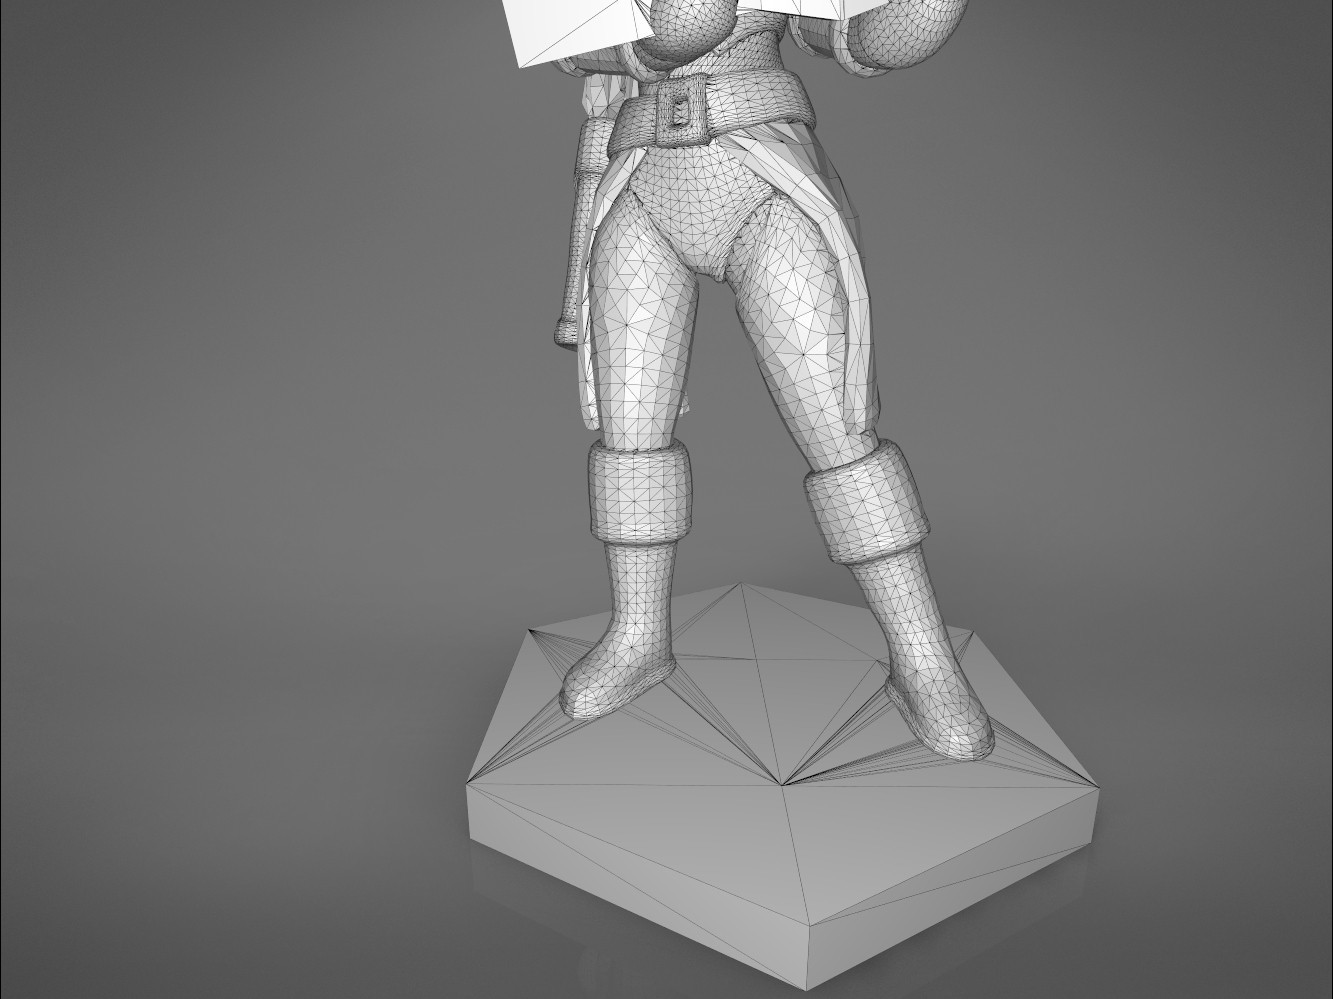 female_ranger-detail_2.544.jpg Download STL file ELF RANGER FEMALE CHARACTER GAME FIGURES 3D print model • 3D printing object, 3D-mon